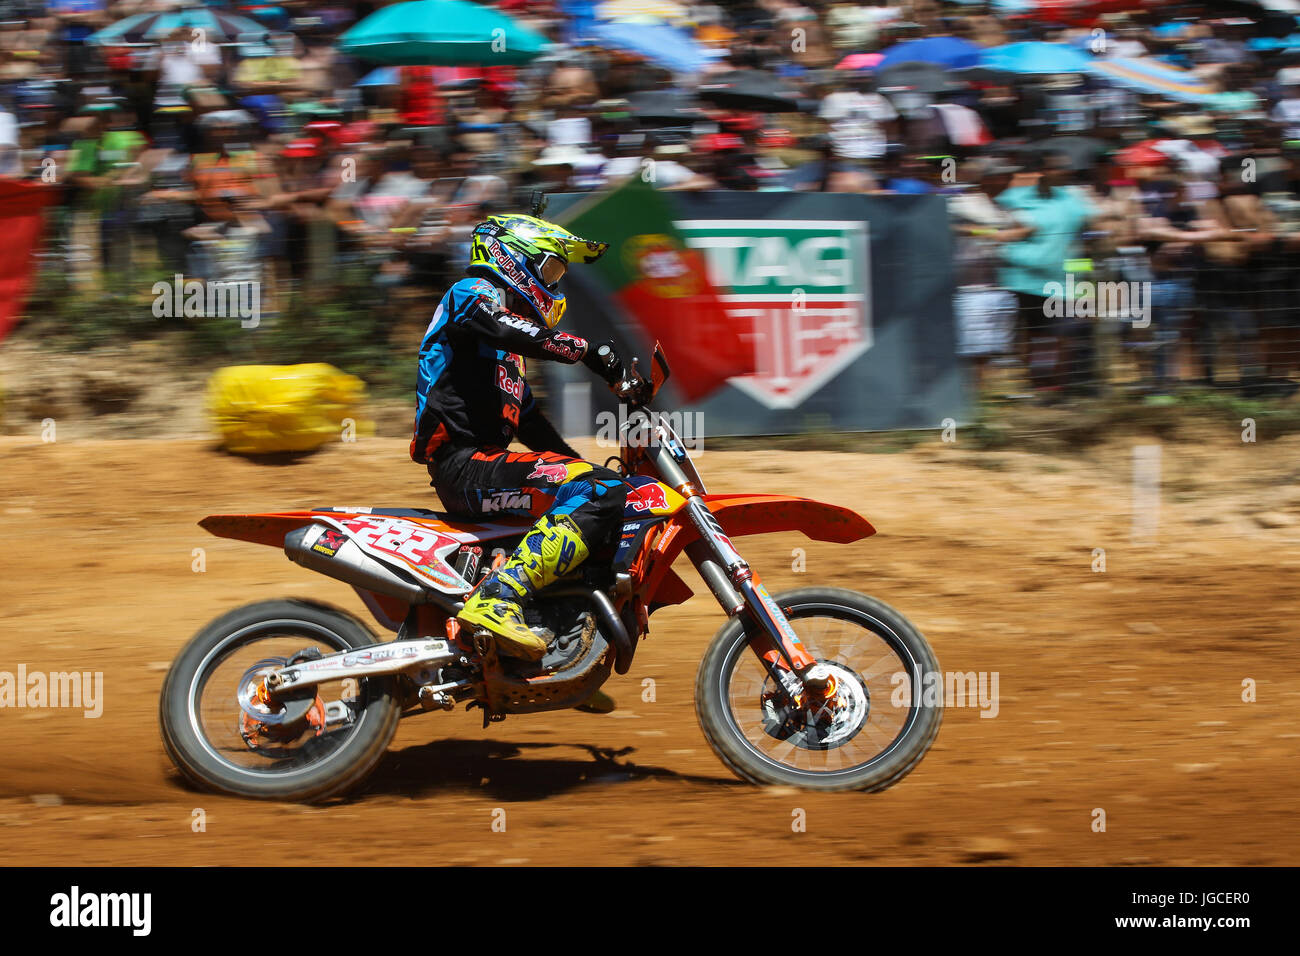 Antonio Cairoli #222 (ITA) in KTM of Red Bull KTM Factory Racing in action during the MXGP World Championship 2017 - Stock Image